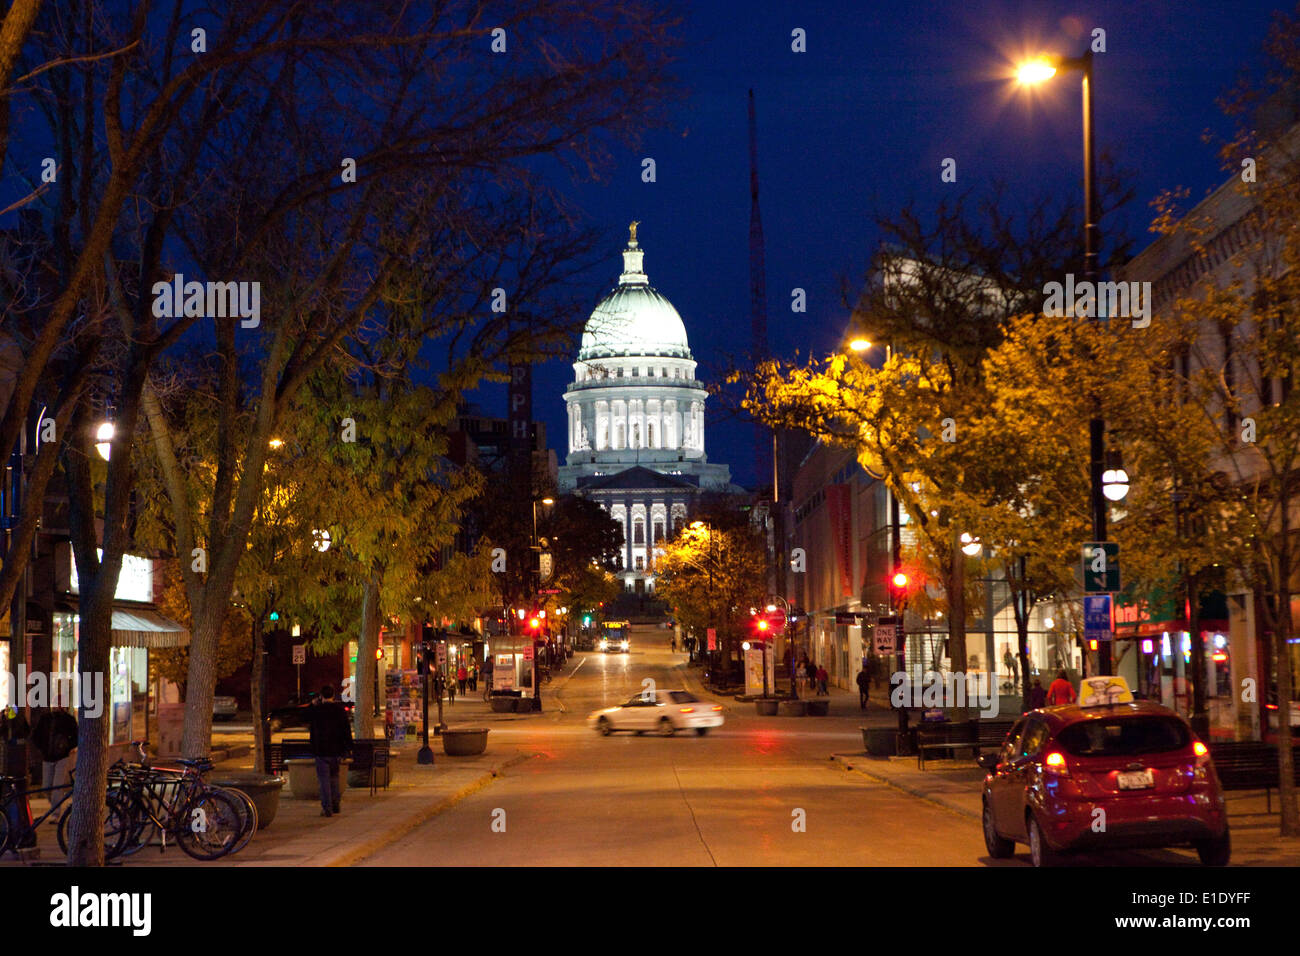 Visit downtown Madison, Wisconsin, State Street and Capitol Square for shopping, restaurants, bars, galleries, hotels, locally owned businesses, events, entertainment, arts and parking, all in Madison's Central Business Improvement District (BID).